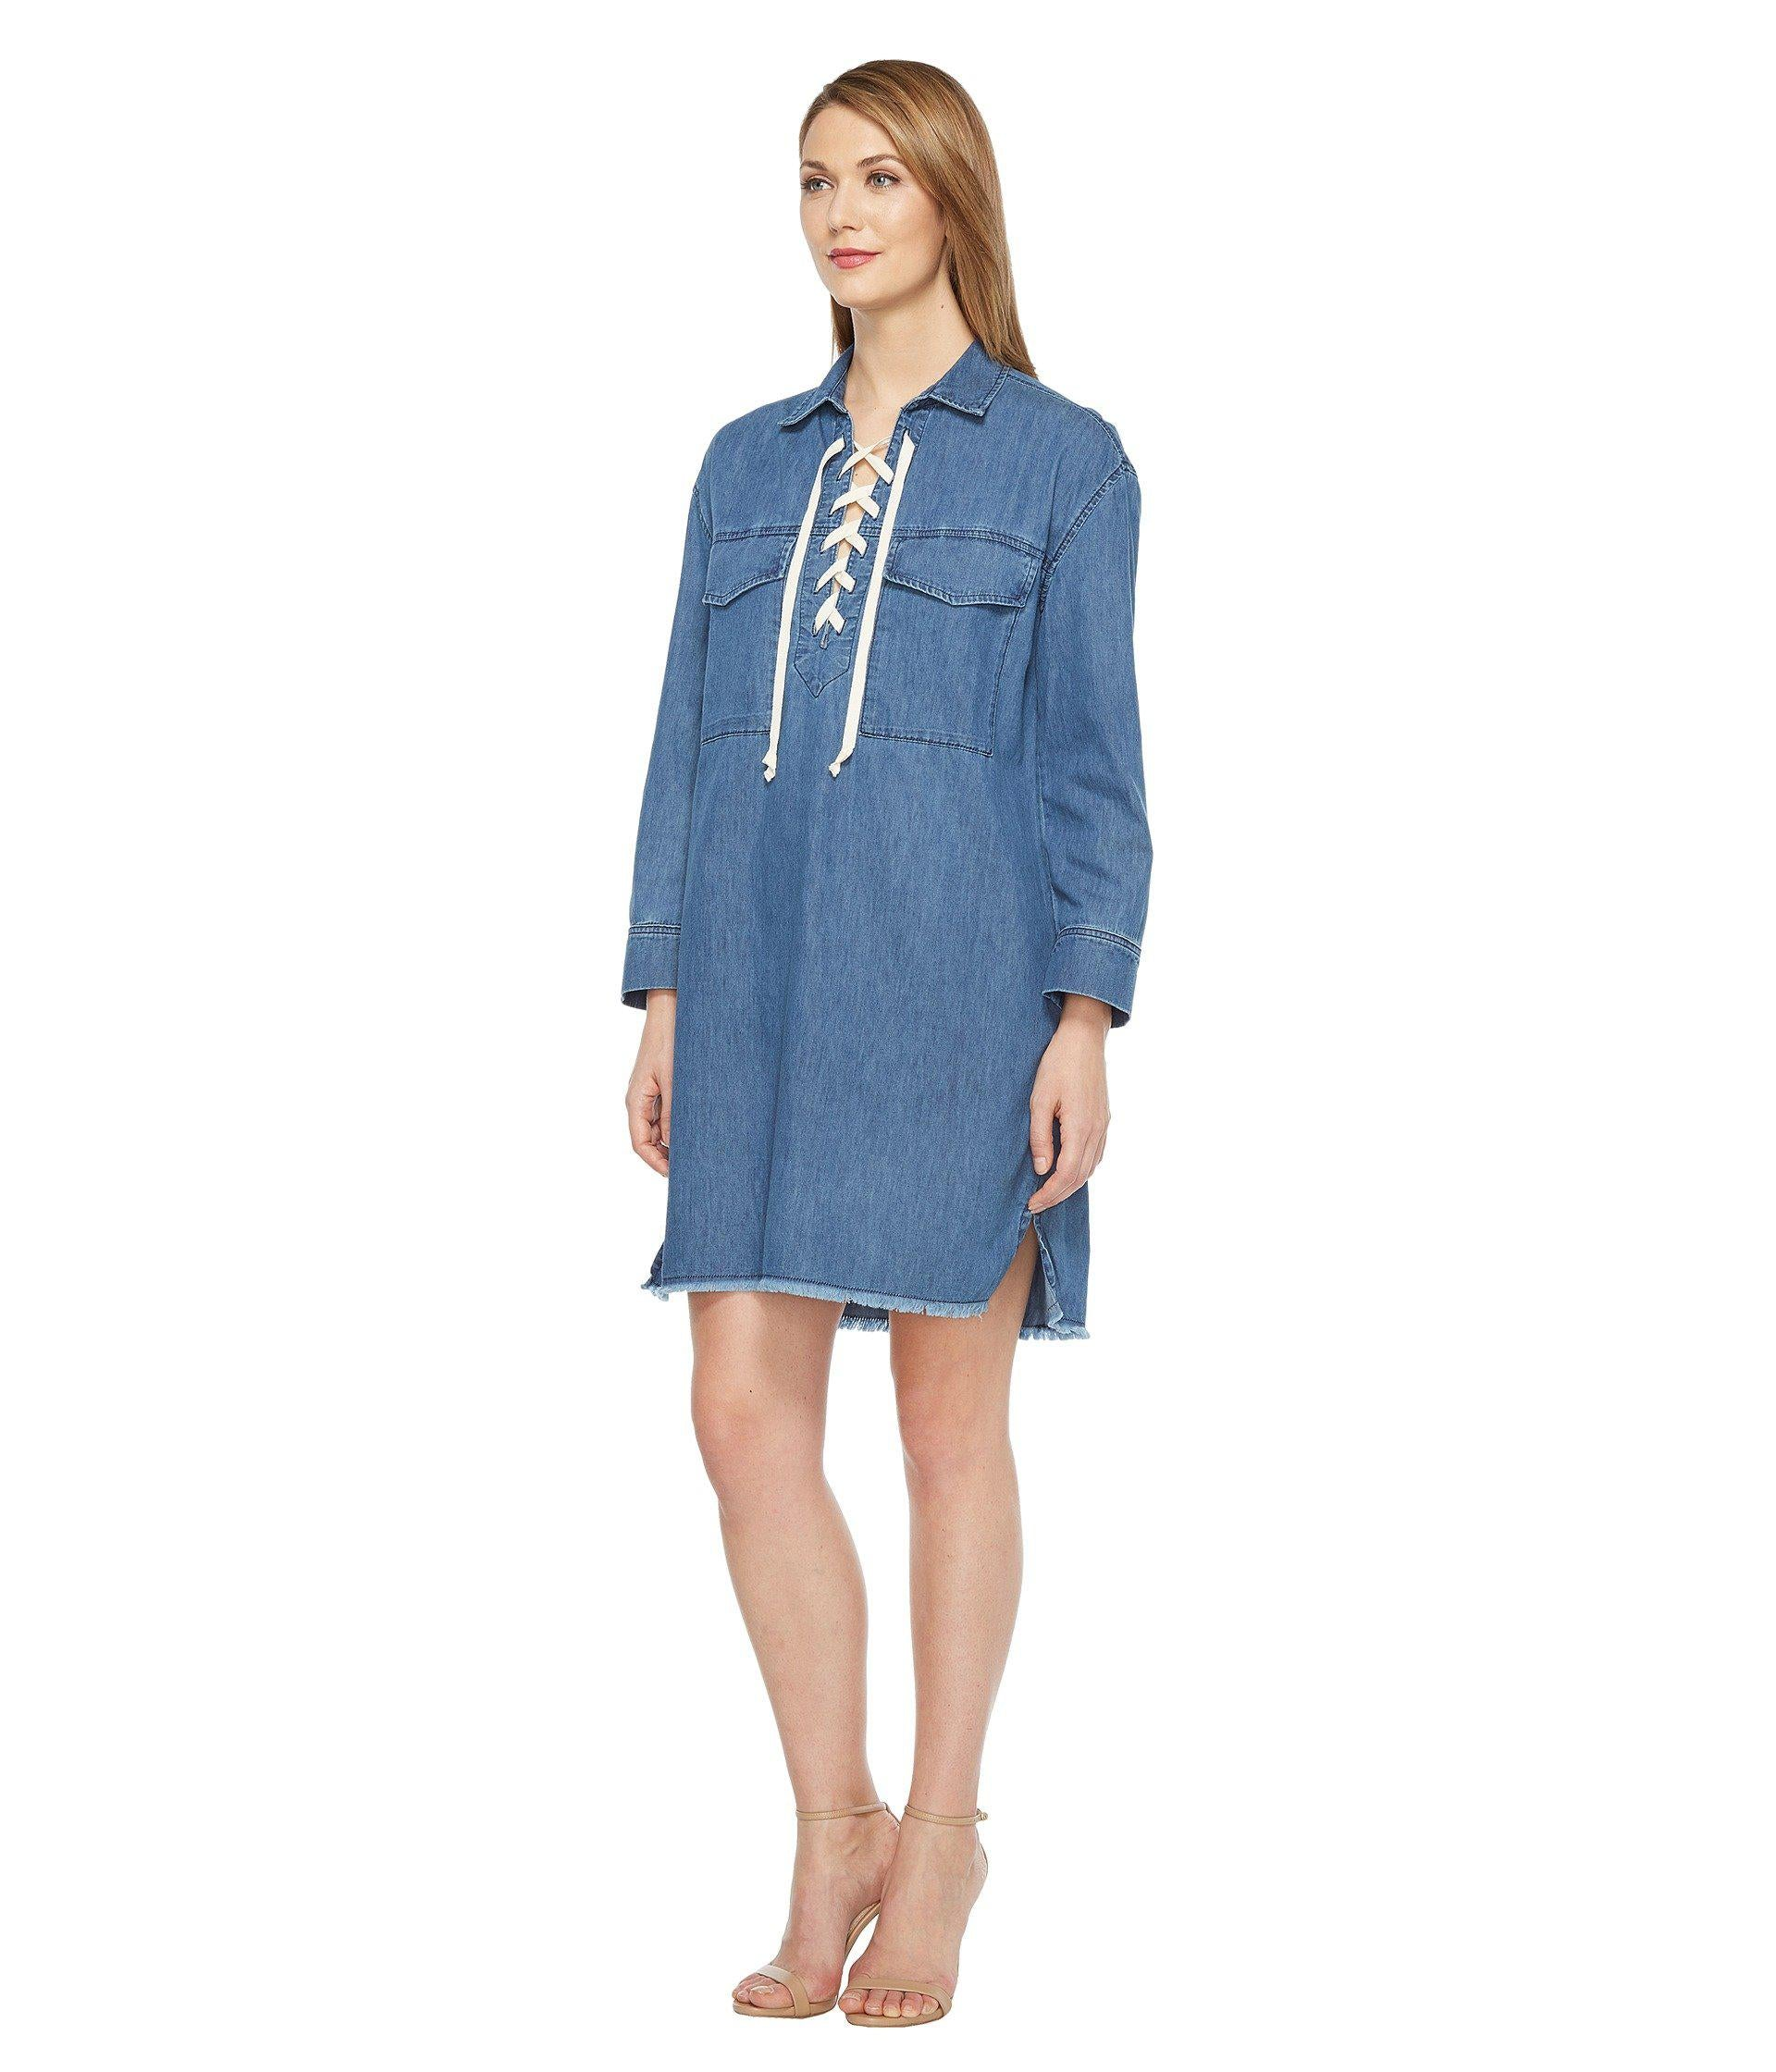 Joe's Jeans Eveline Lace up Denim Dress Dark Blue M